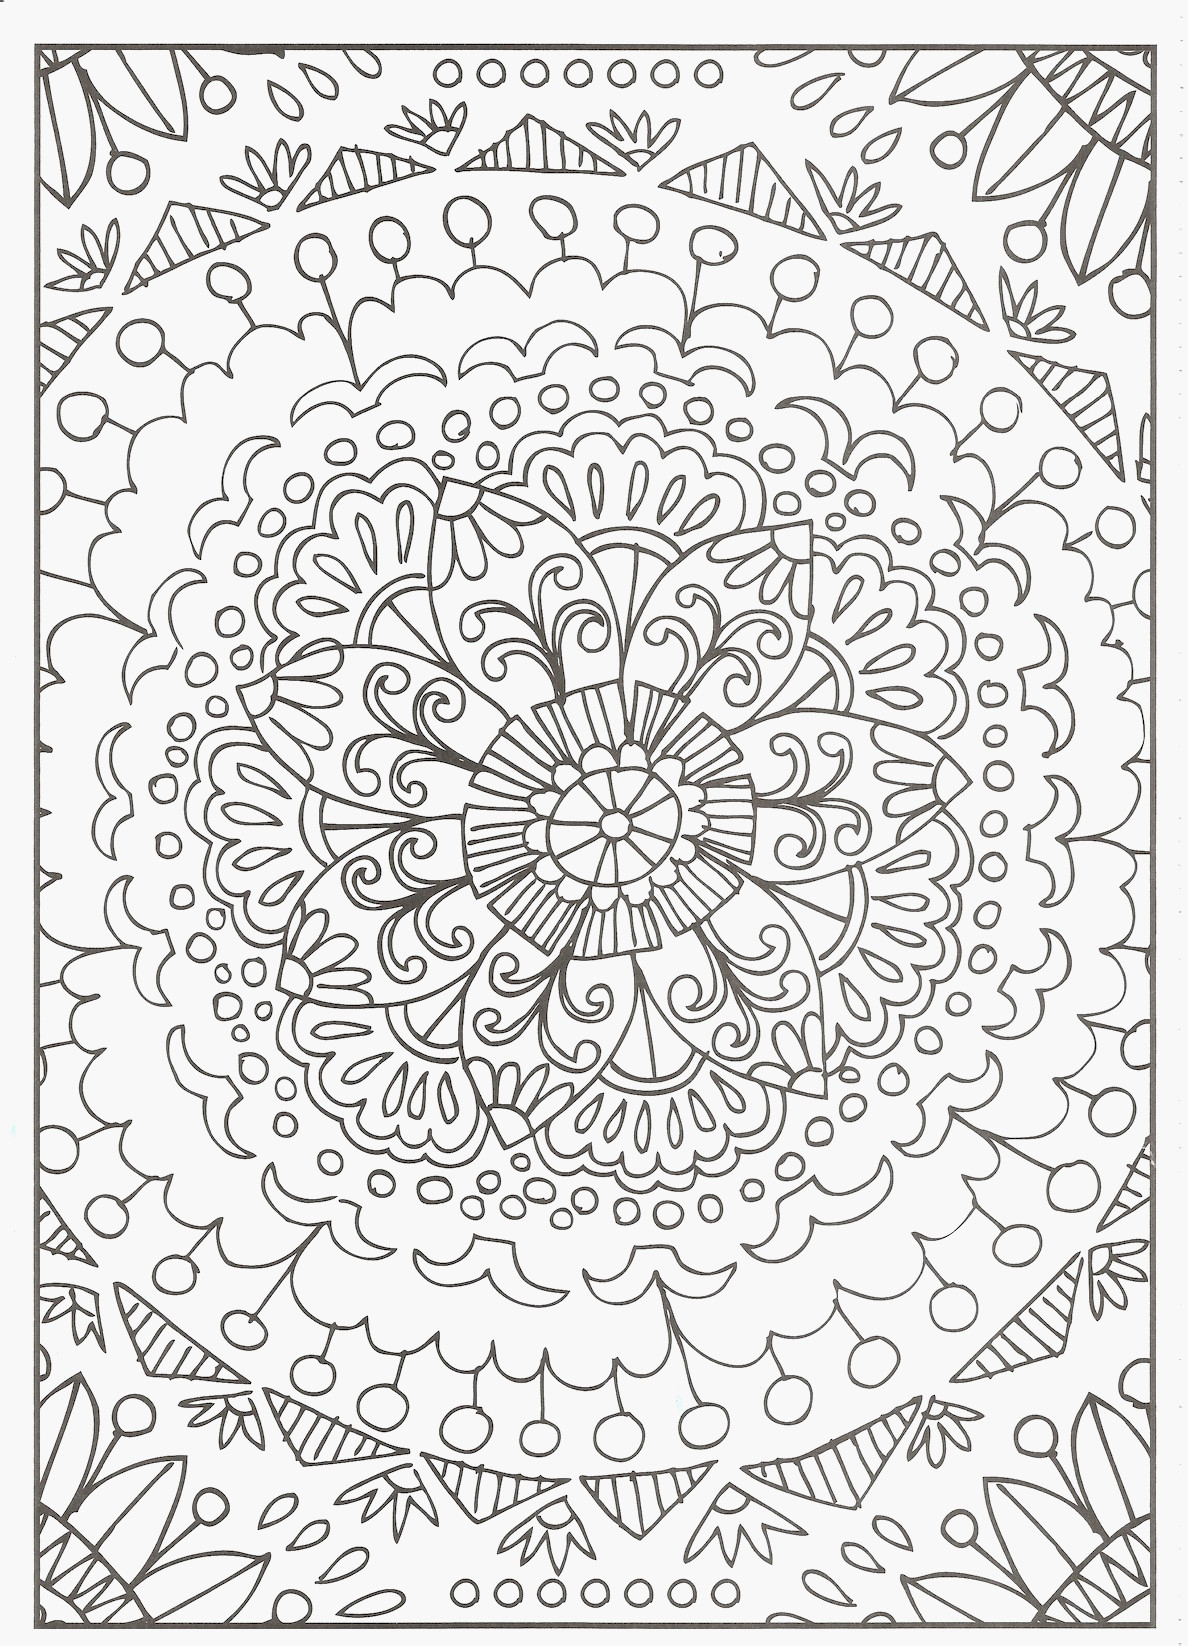 gecko coloring pages Download-Gecko Coloring Pages Free Advanced Coloring Pages New Gecko Coloring Page Best 77 Best 20-t